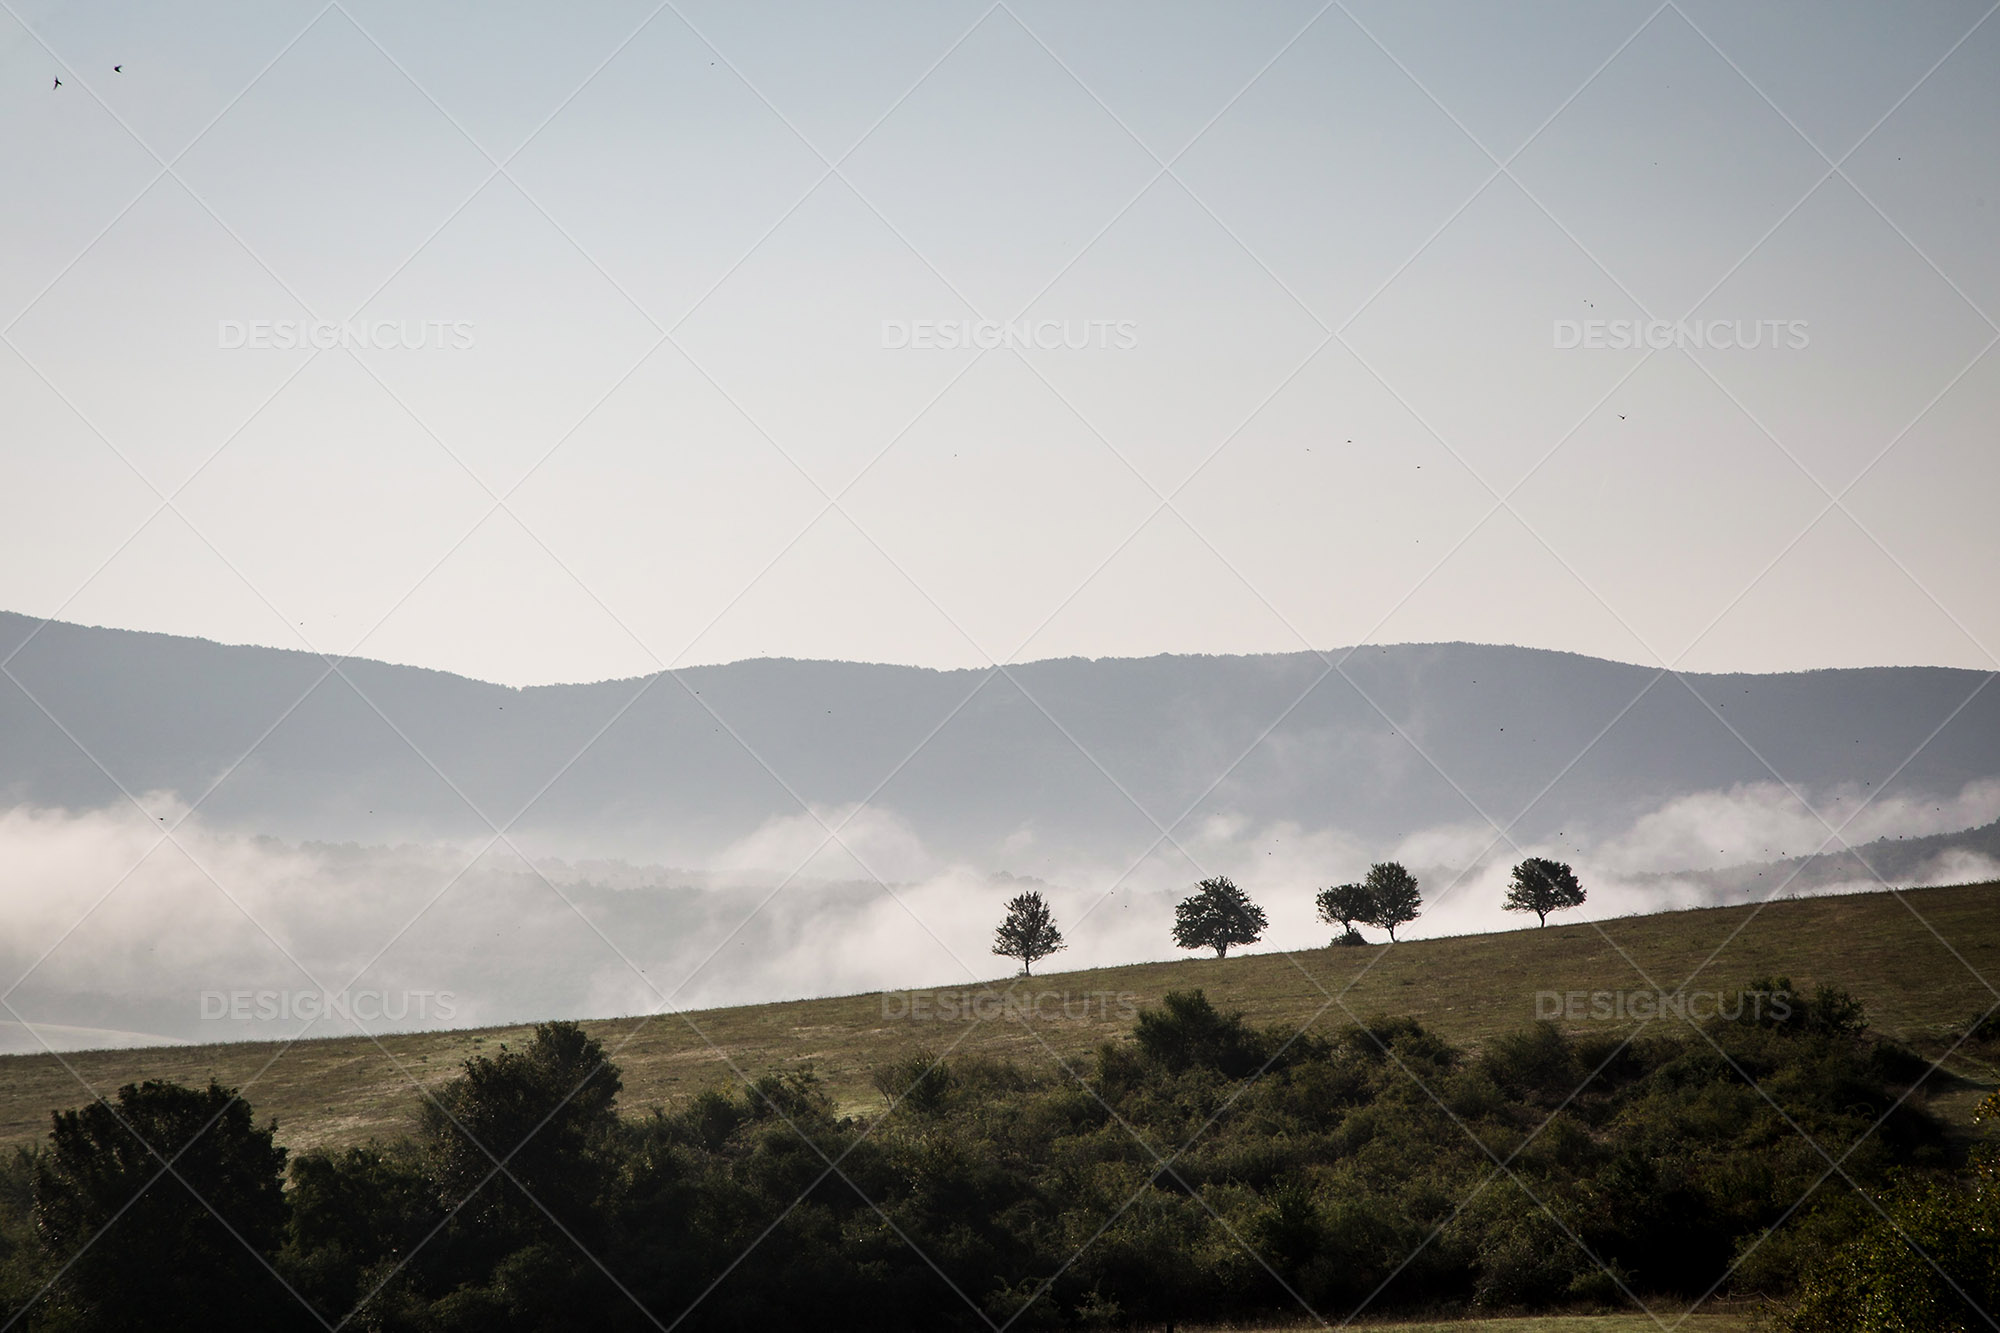 Mist Clearing In The Valleys Around Holloko In Hungary 5